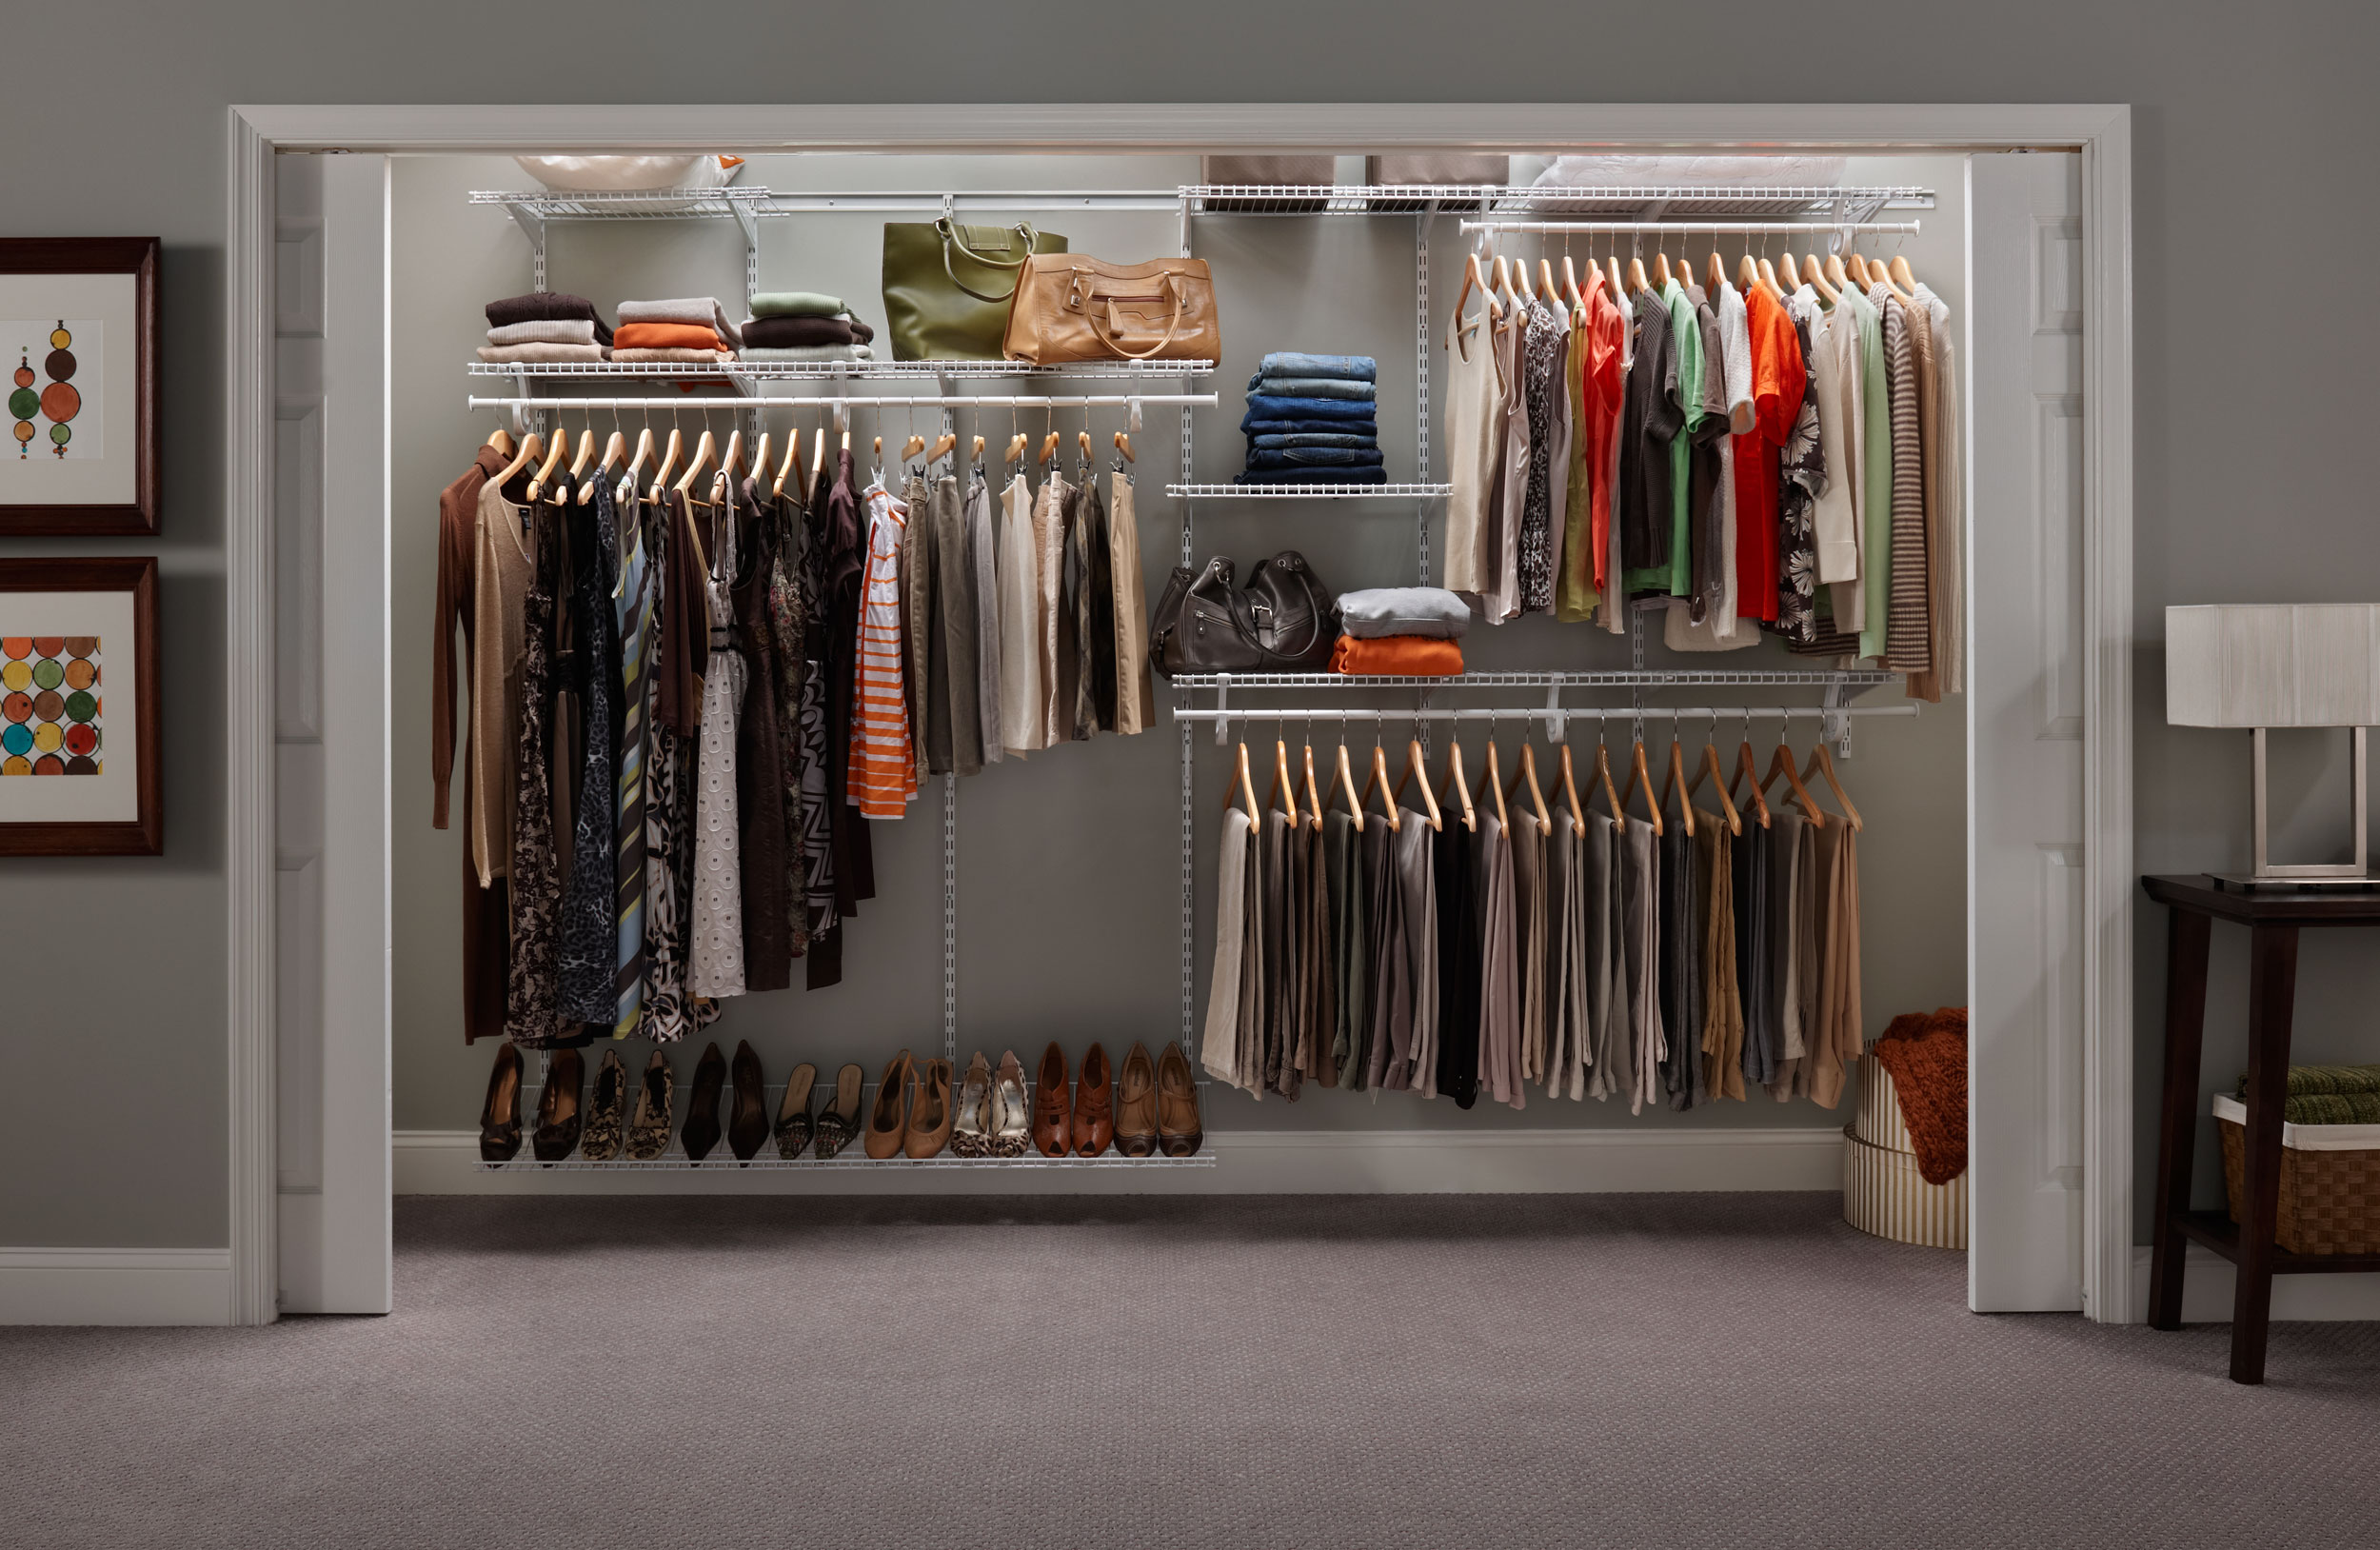 Marvelous Contact Us Today On 01622 870050 Or At Sales@closetmaid.co.uk To Discuss  Your Next Project And See How ClosetMaid Can Help Win Over Your Customers!